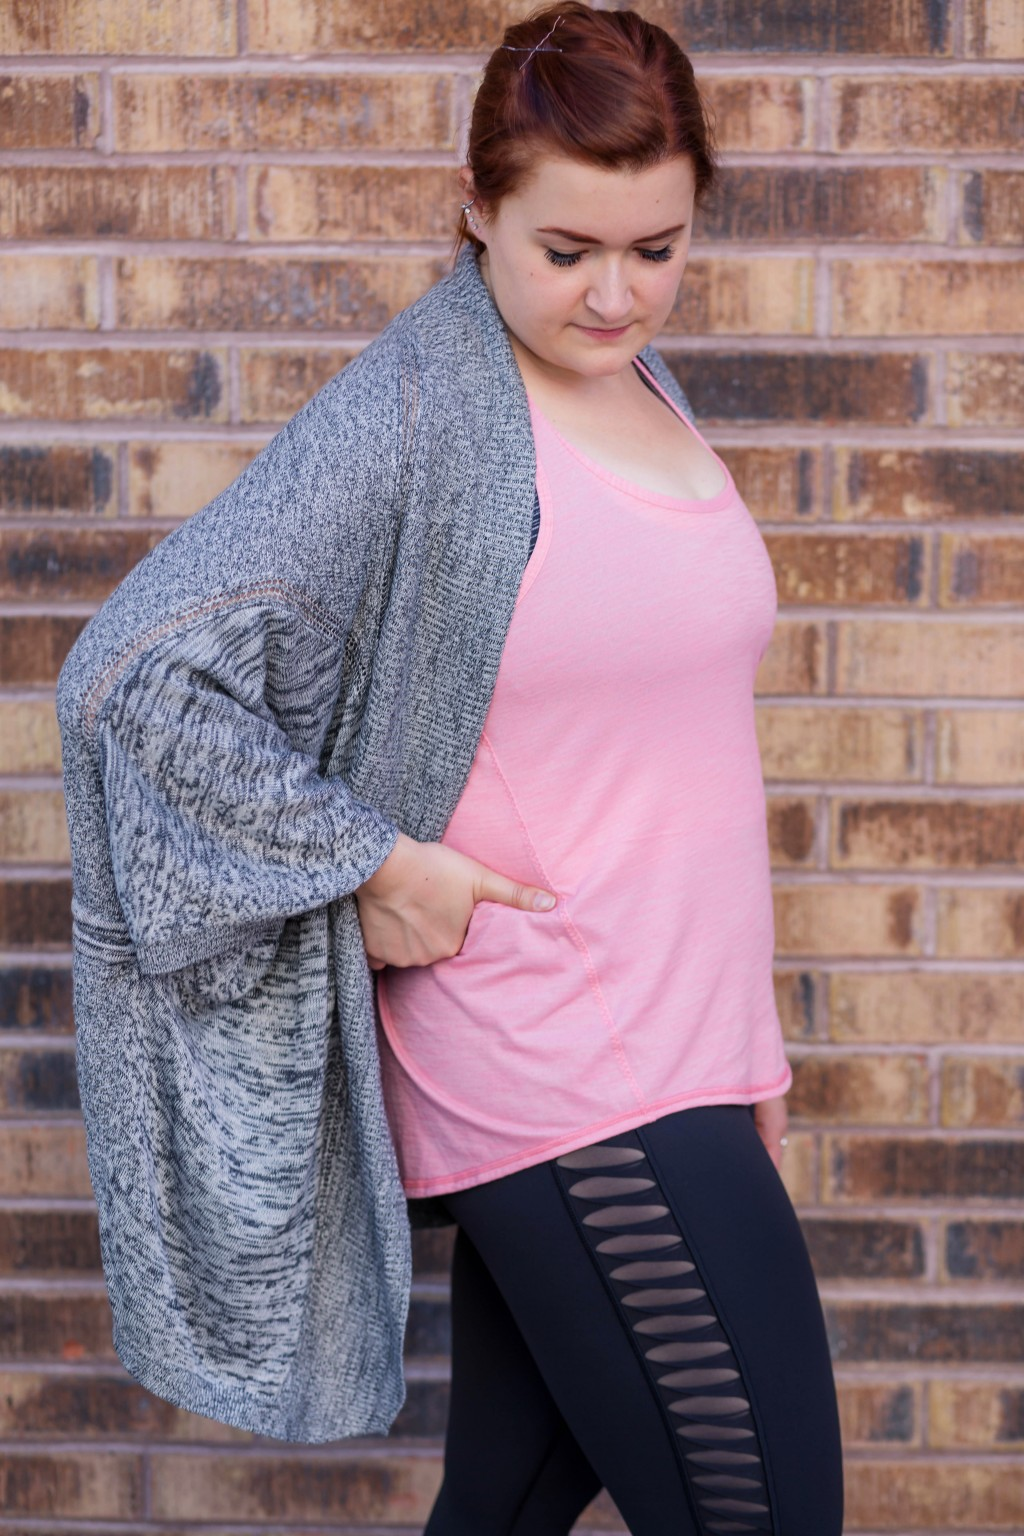 2-kate-retherford-of-all-things-kate-in-lululemon